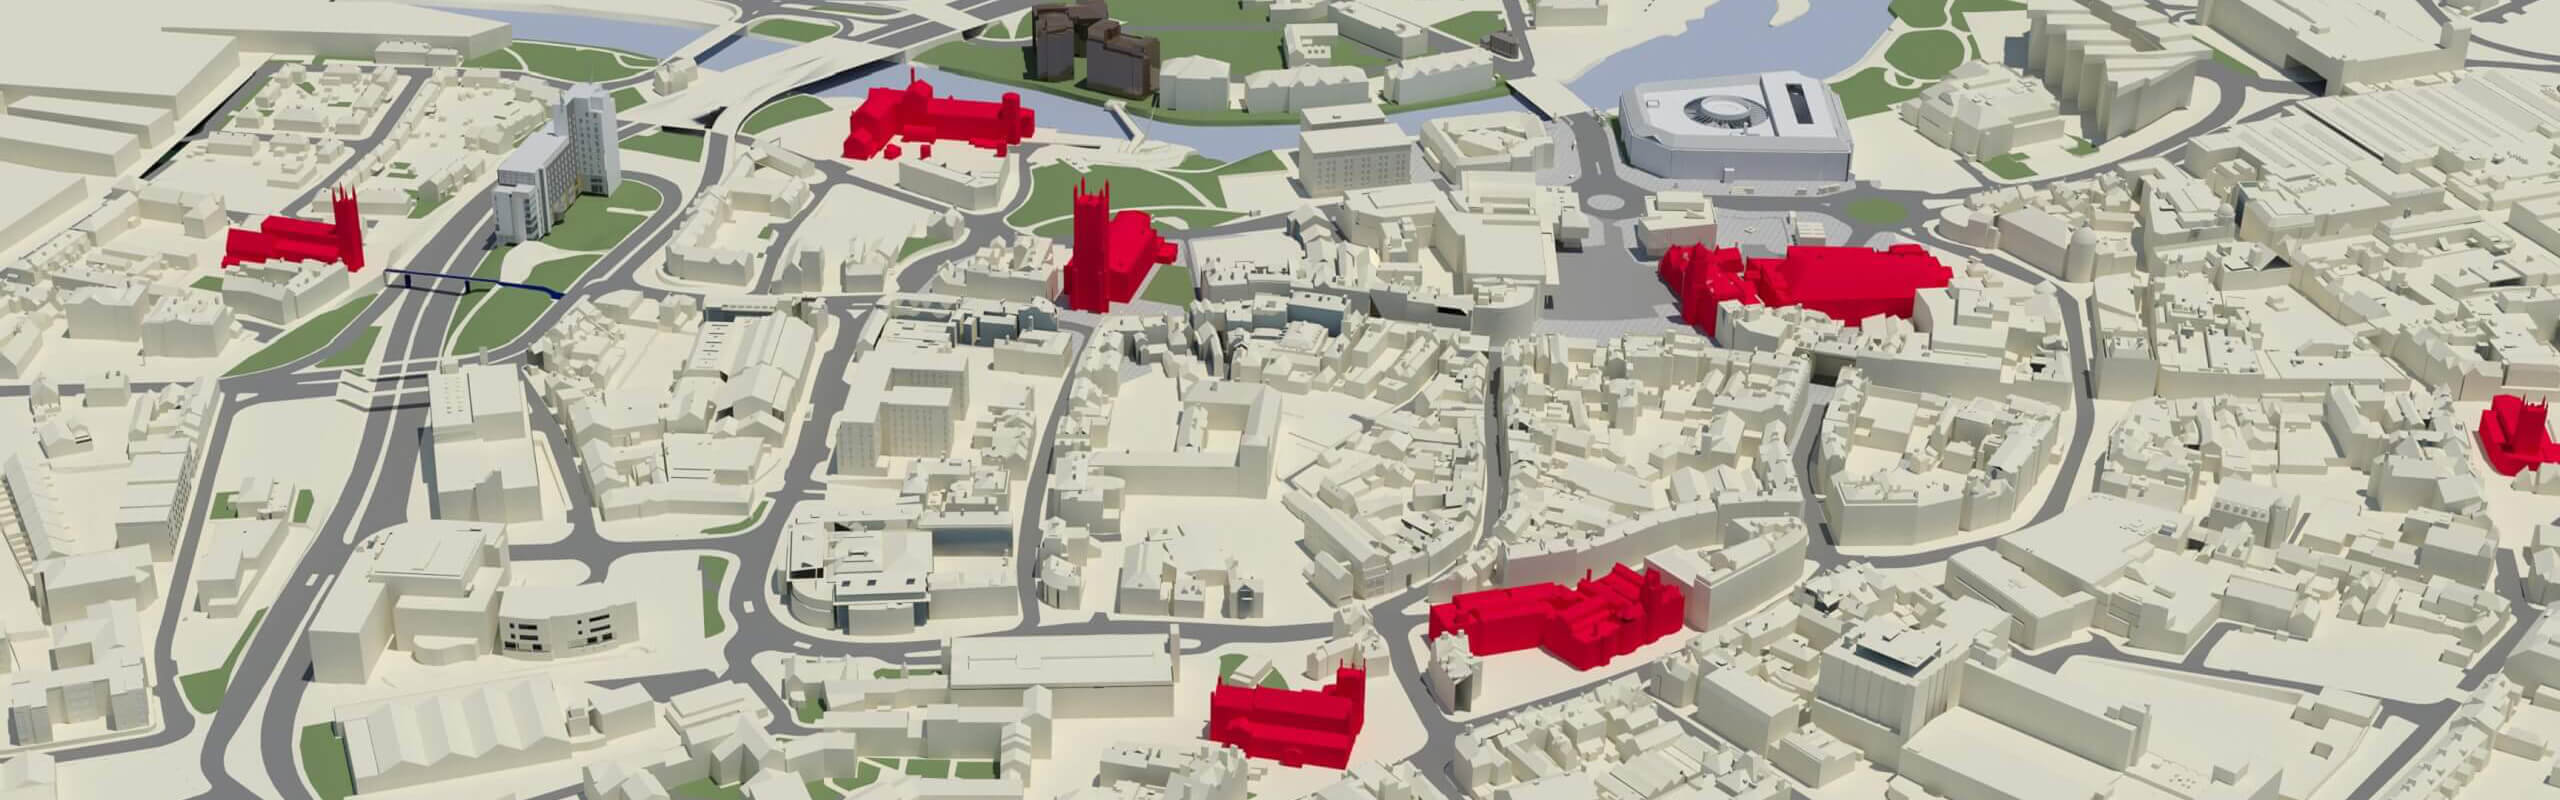 A three-dimensional illustration of the city of Derby, as seen from the air.